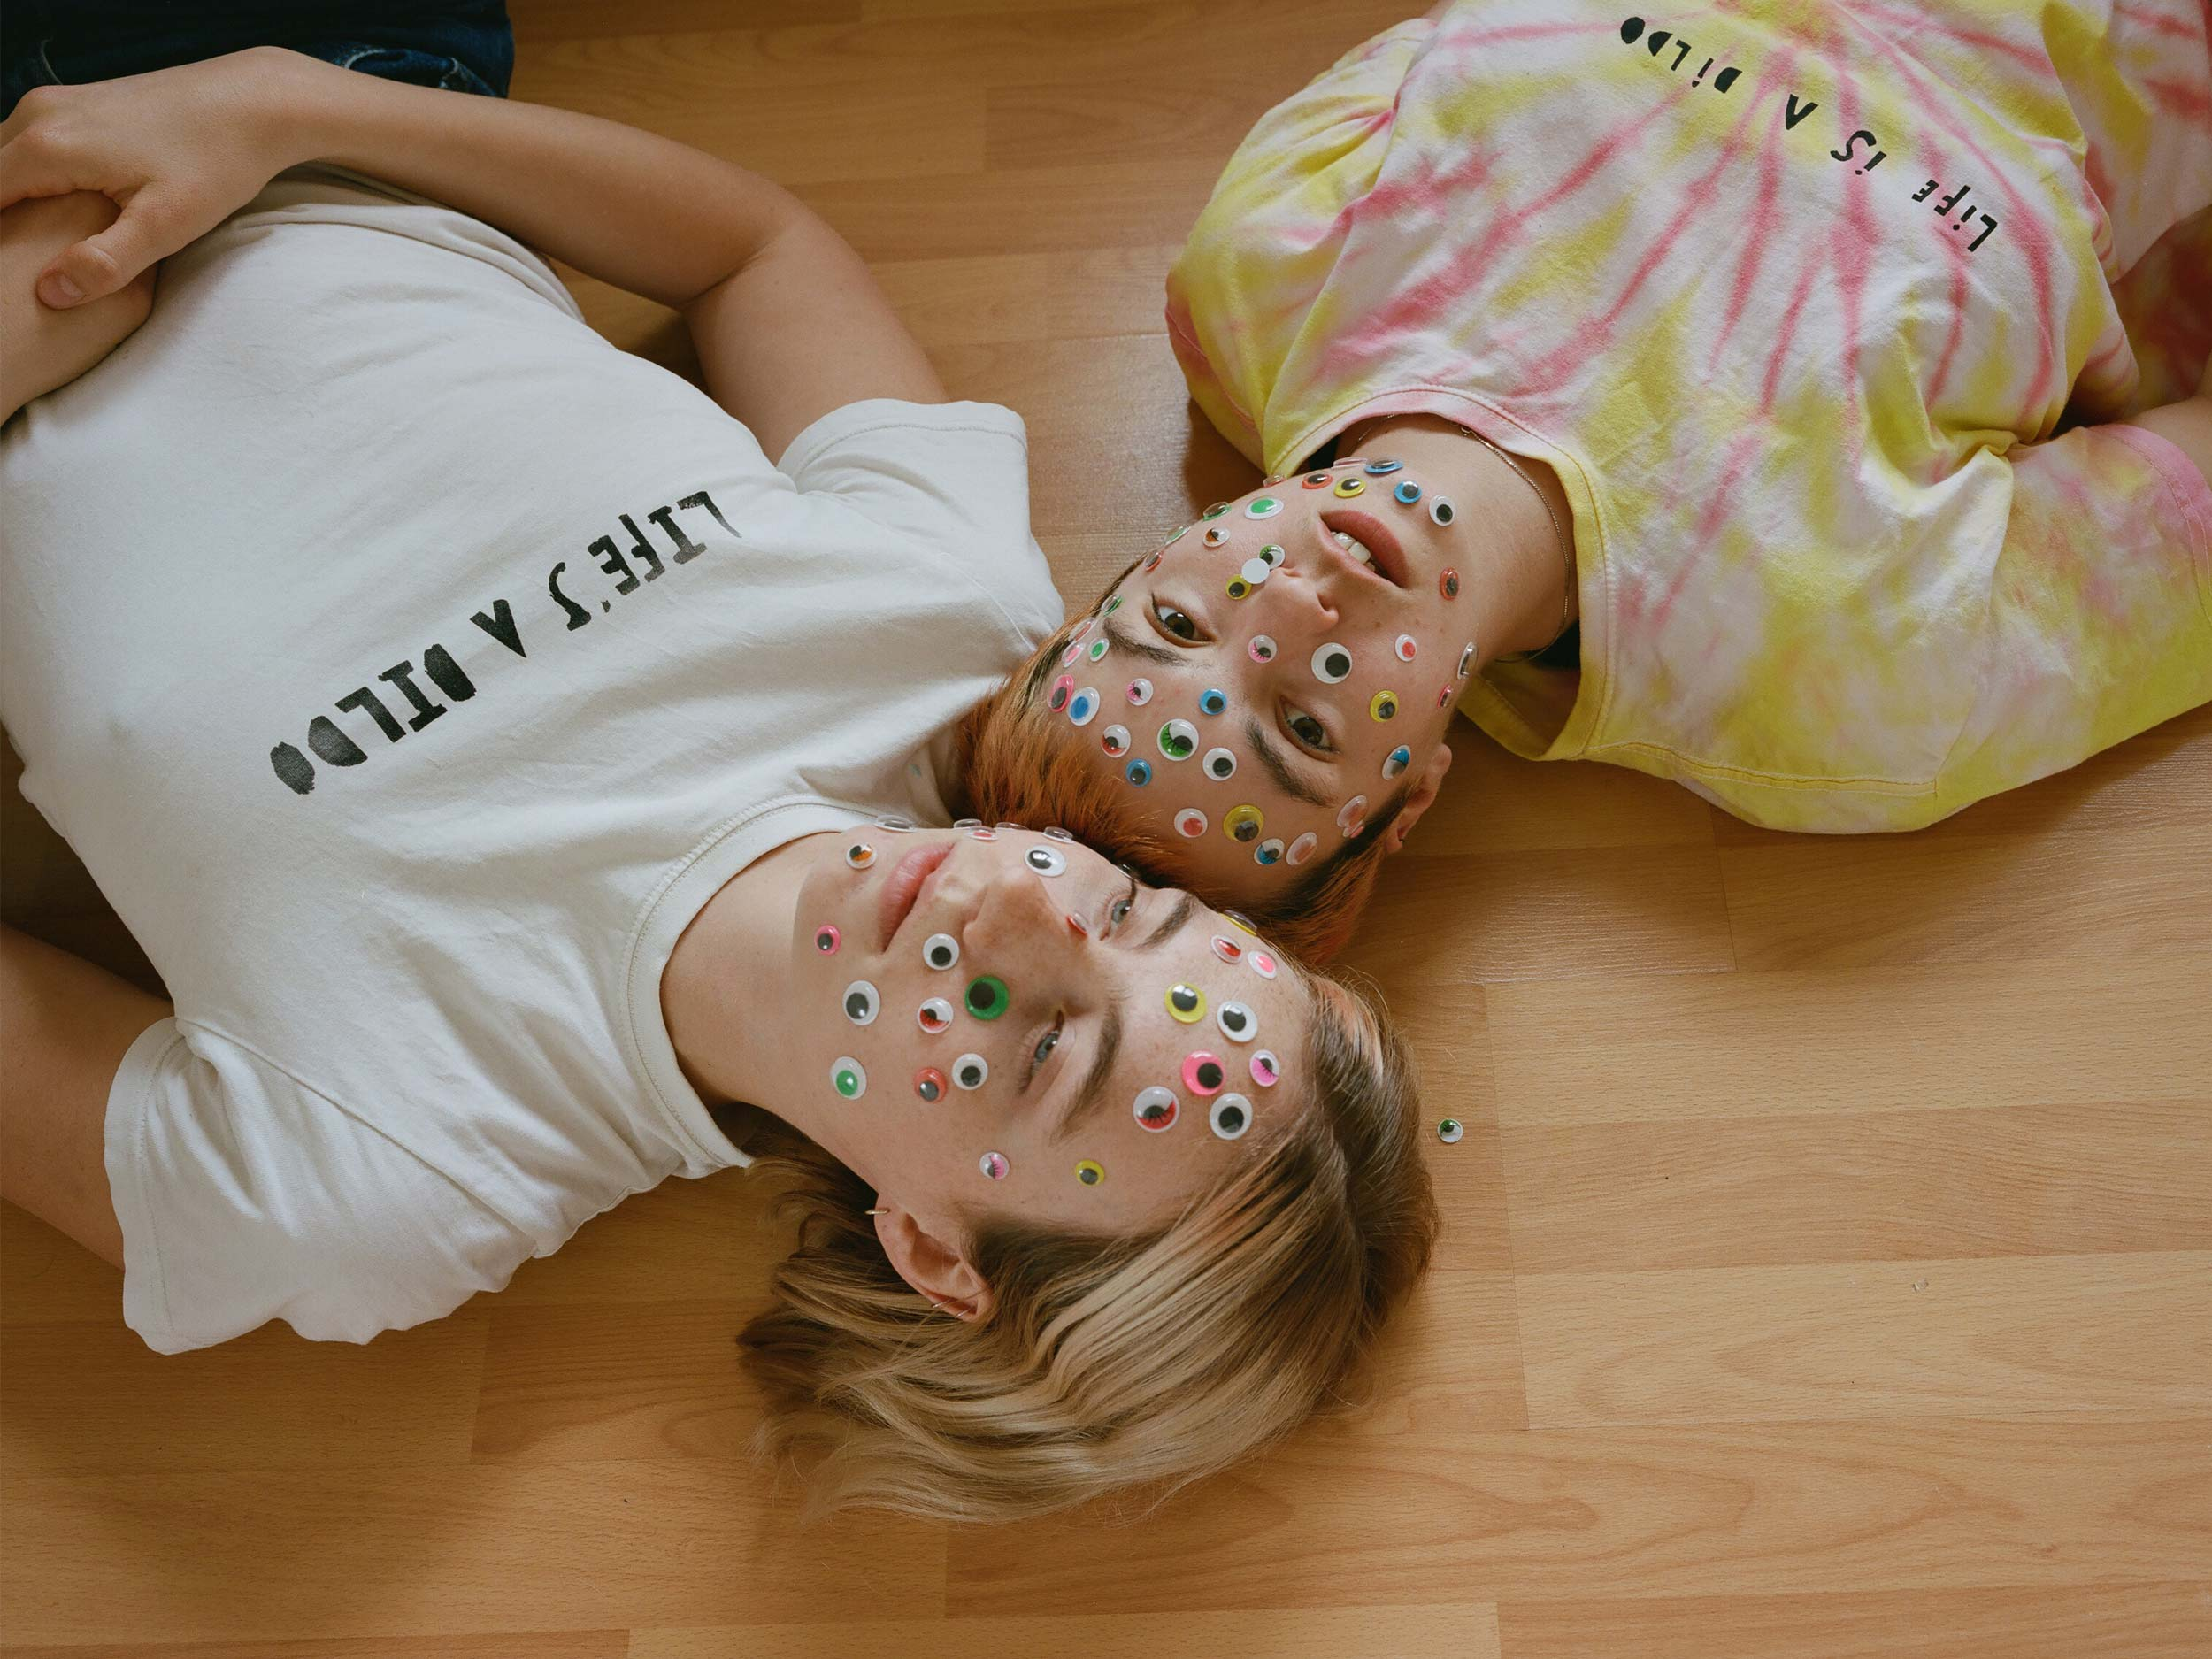 Heather Glazzard and Nora Nord's quarantine photos are a delightful critique of normie culture